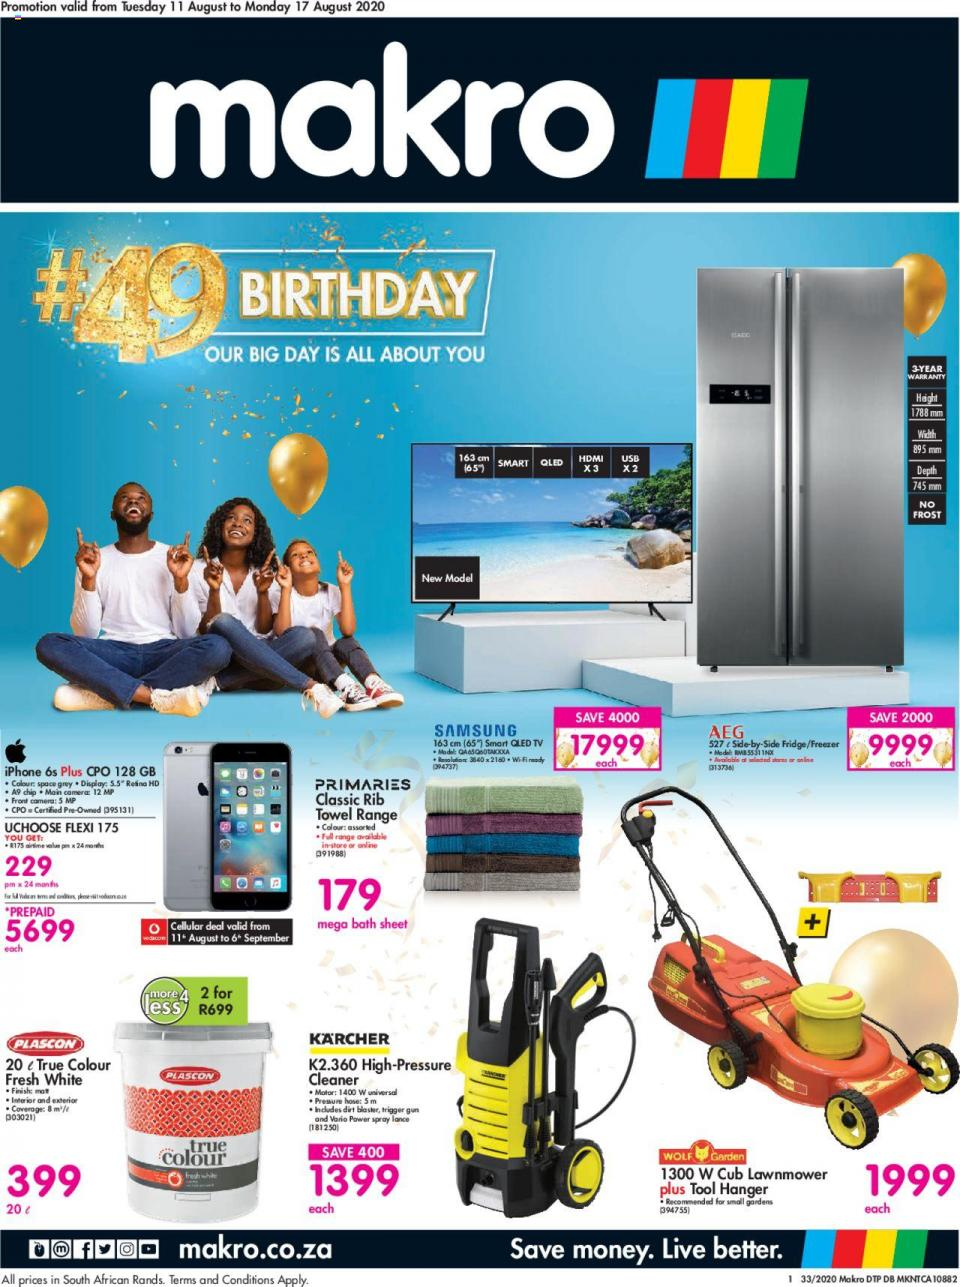 makro specials birthday catalogue 11 august 2020